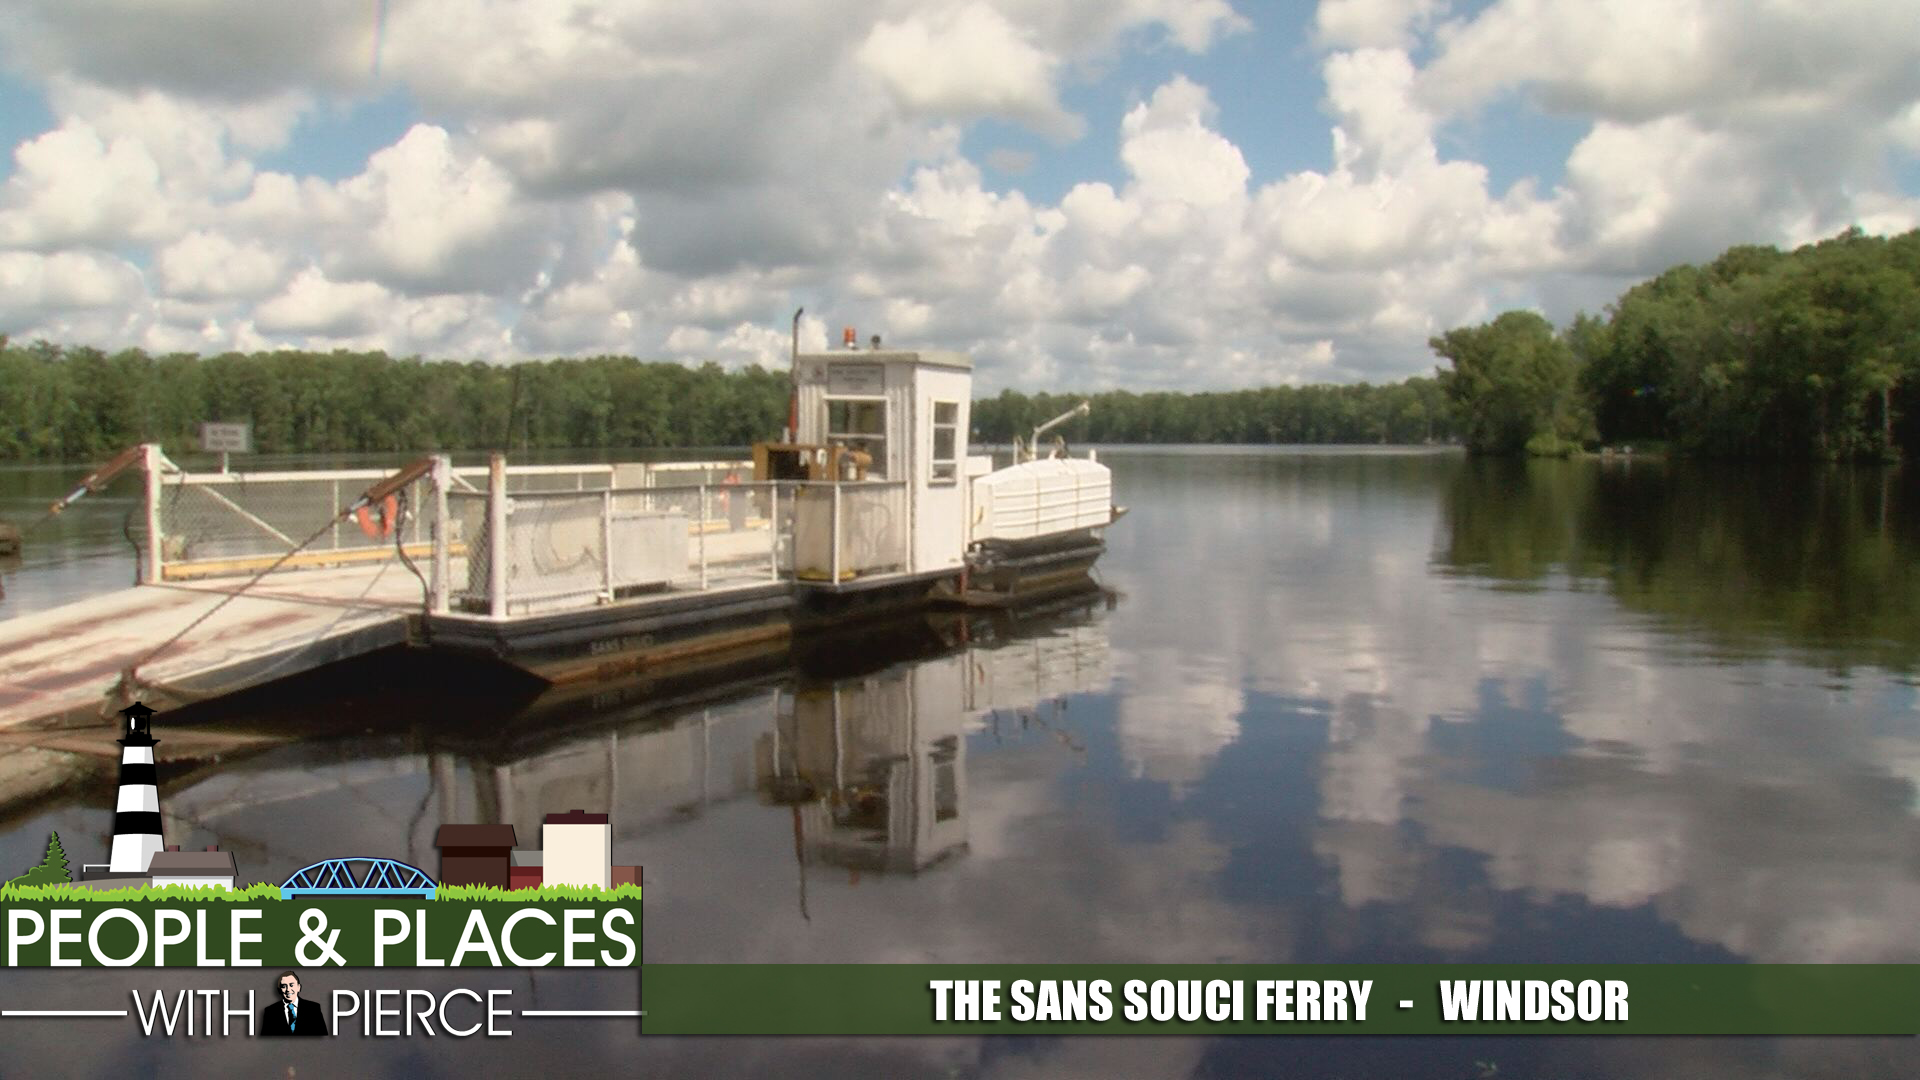 the sans souci ferry ppp for web_444164